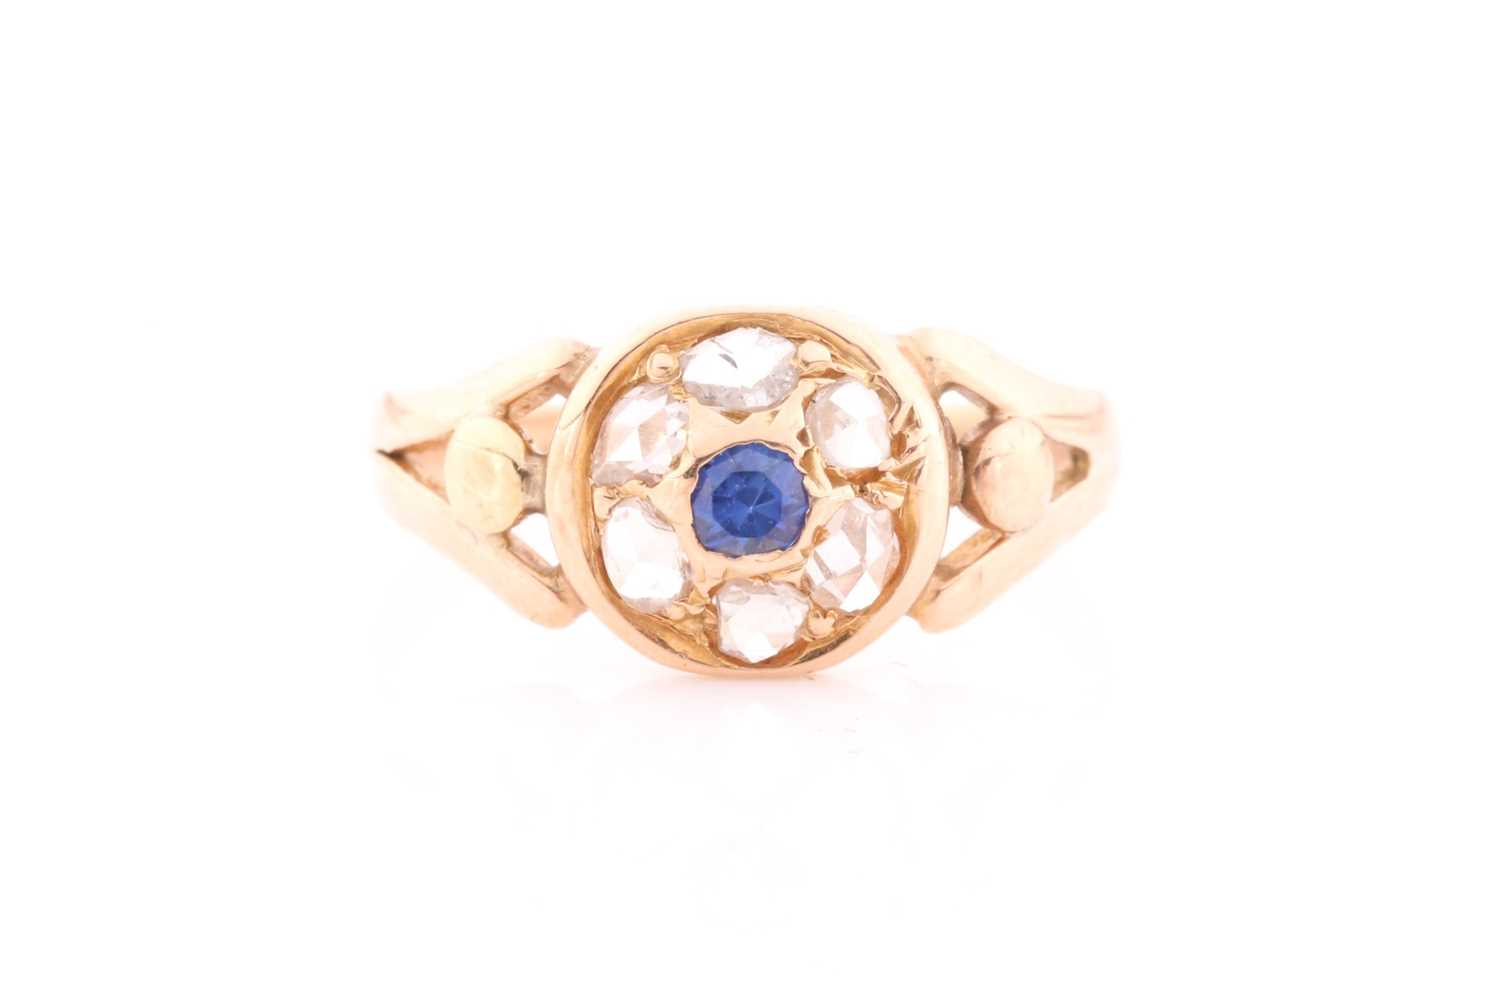 A yellow metal, diamond, and sapphire ring, set with a small round sapphire, within a border of